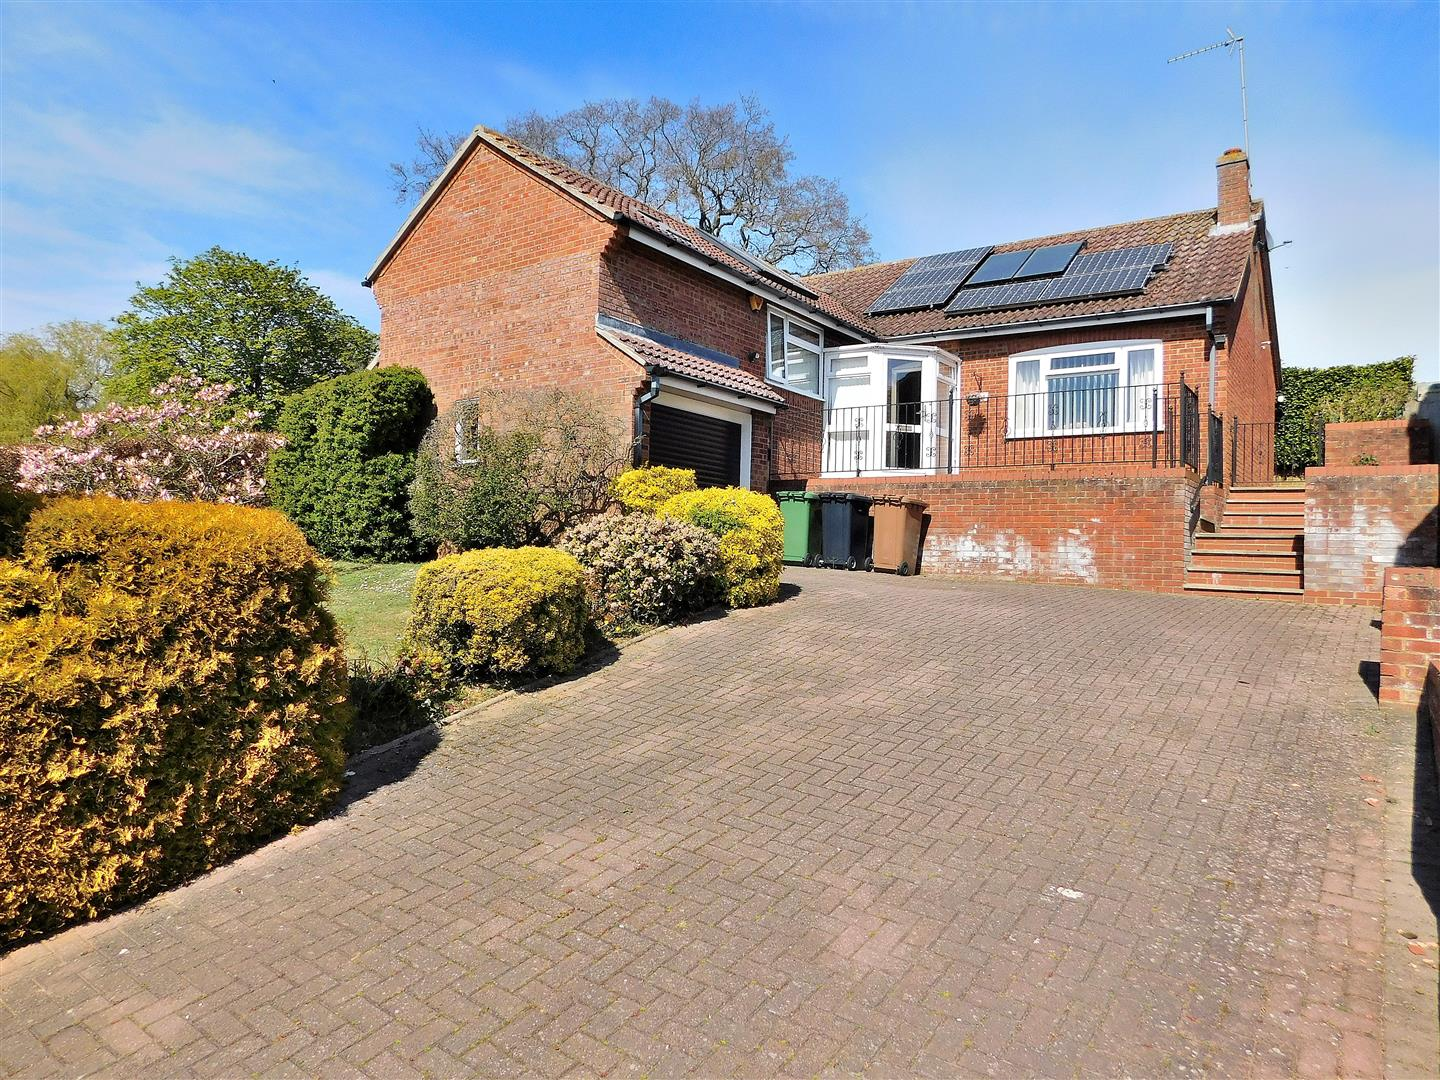 3 bed detached bungalow for sale in Tudor Way, King's Lynn, PE31